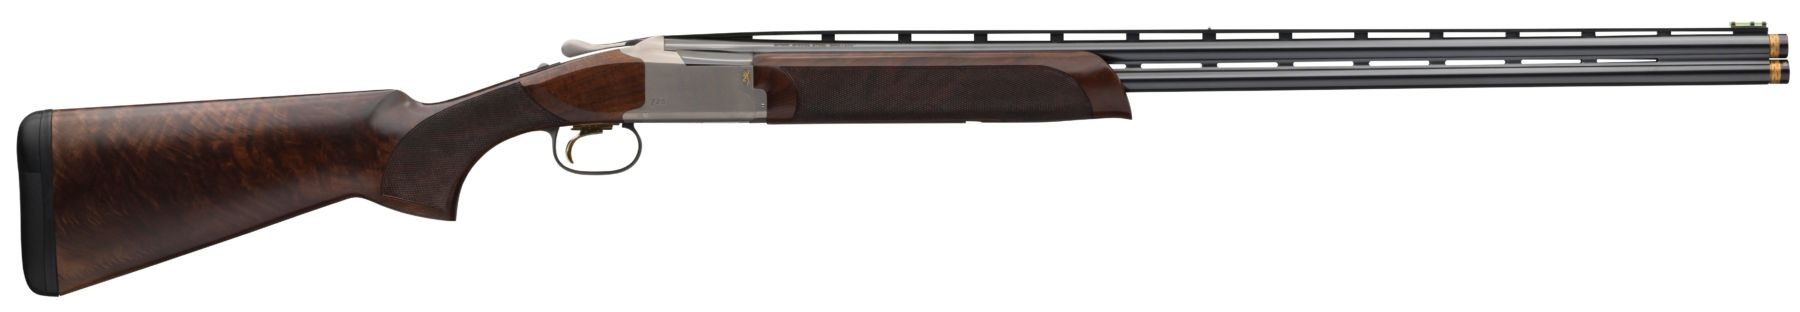 Browning 725 Sporting